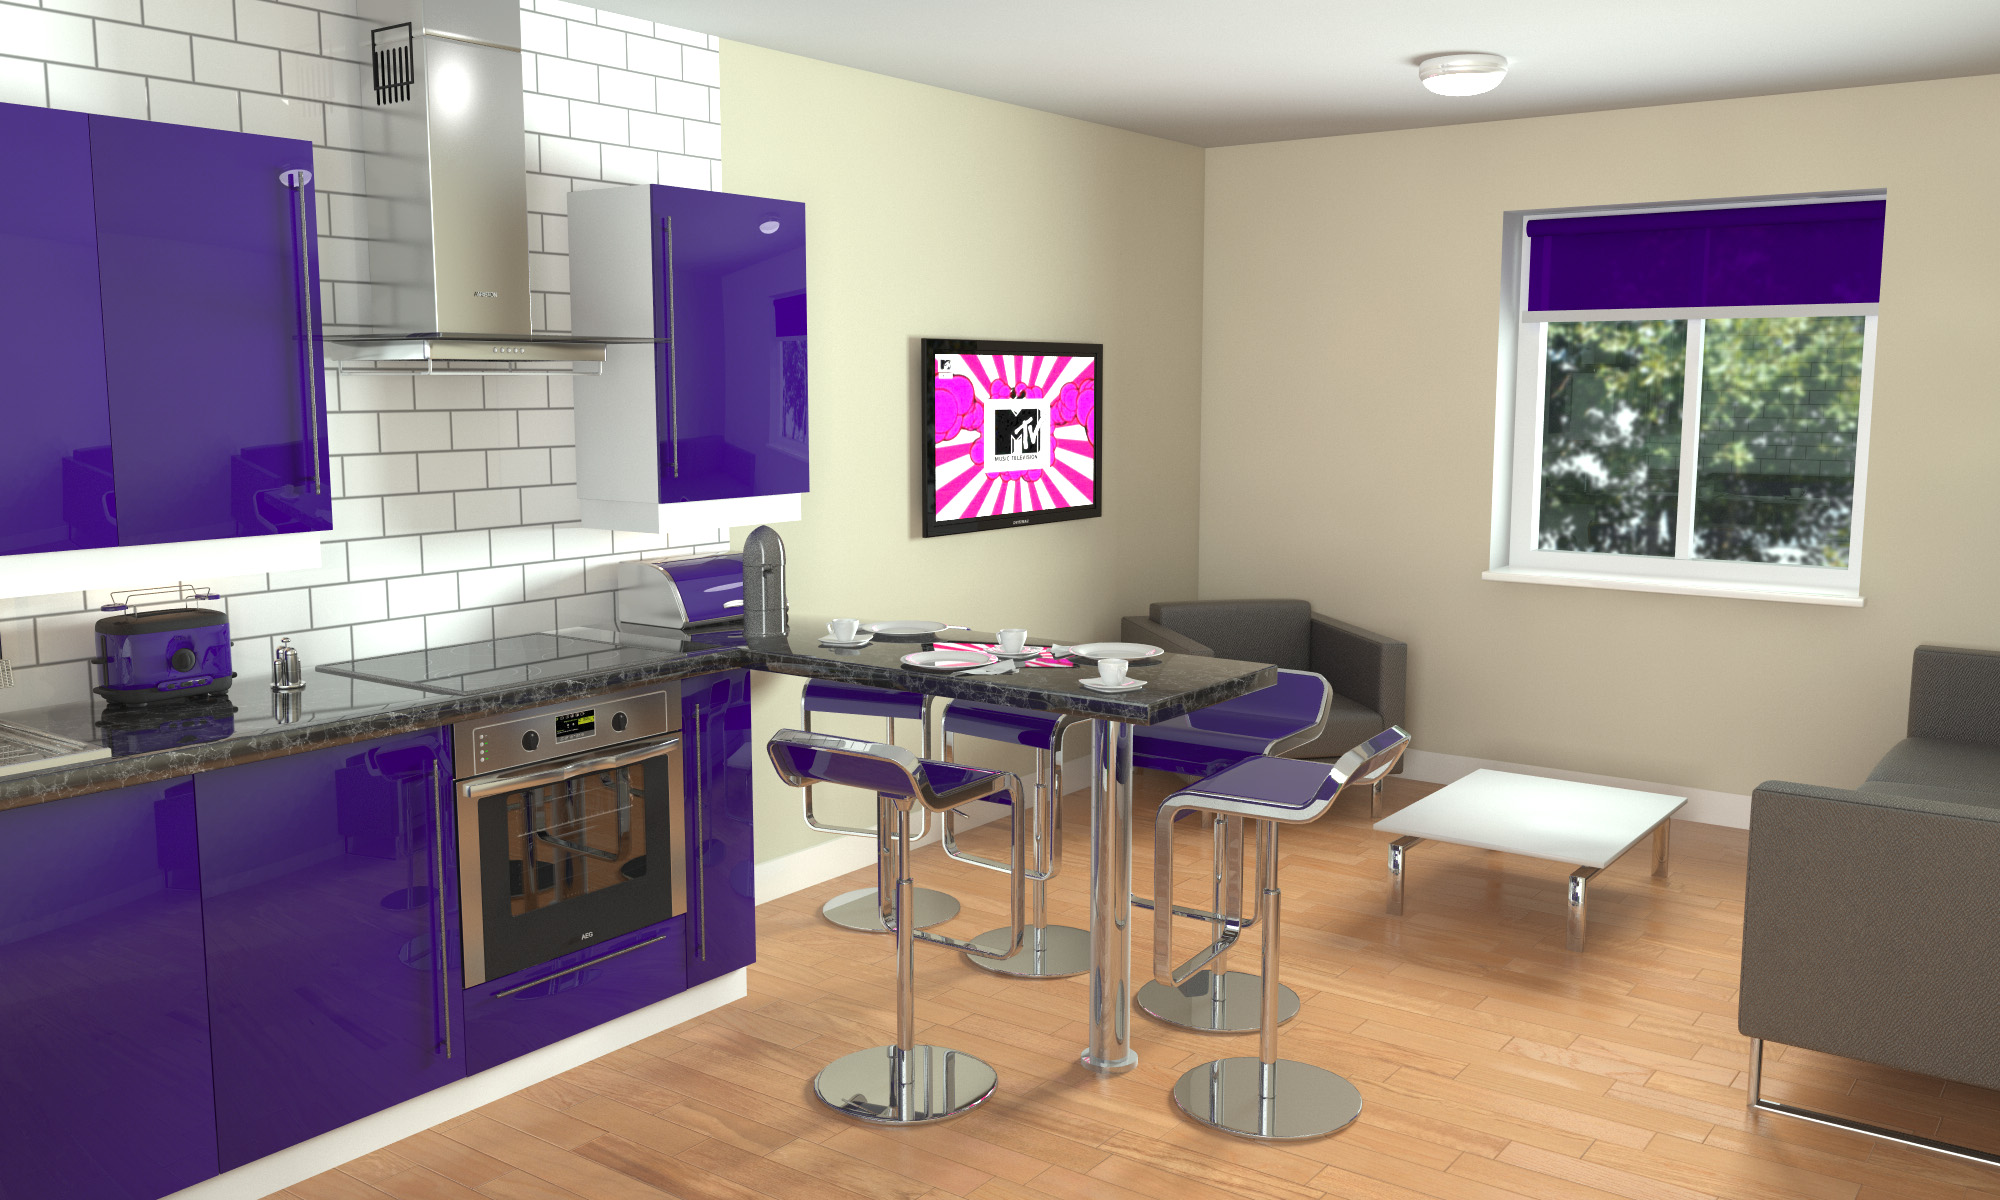 Students Accommodation - Canterbury Student Village From £59,995